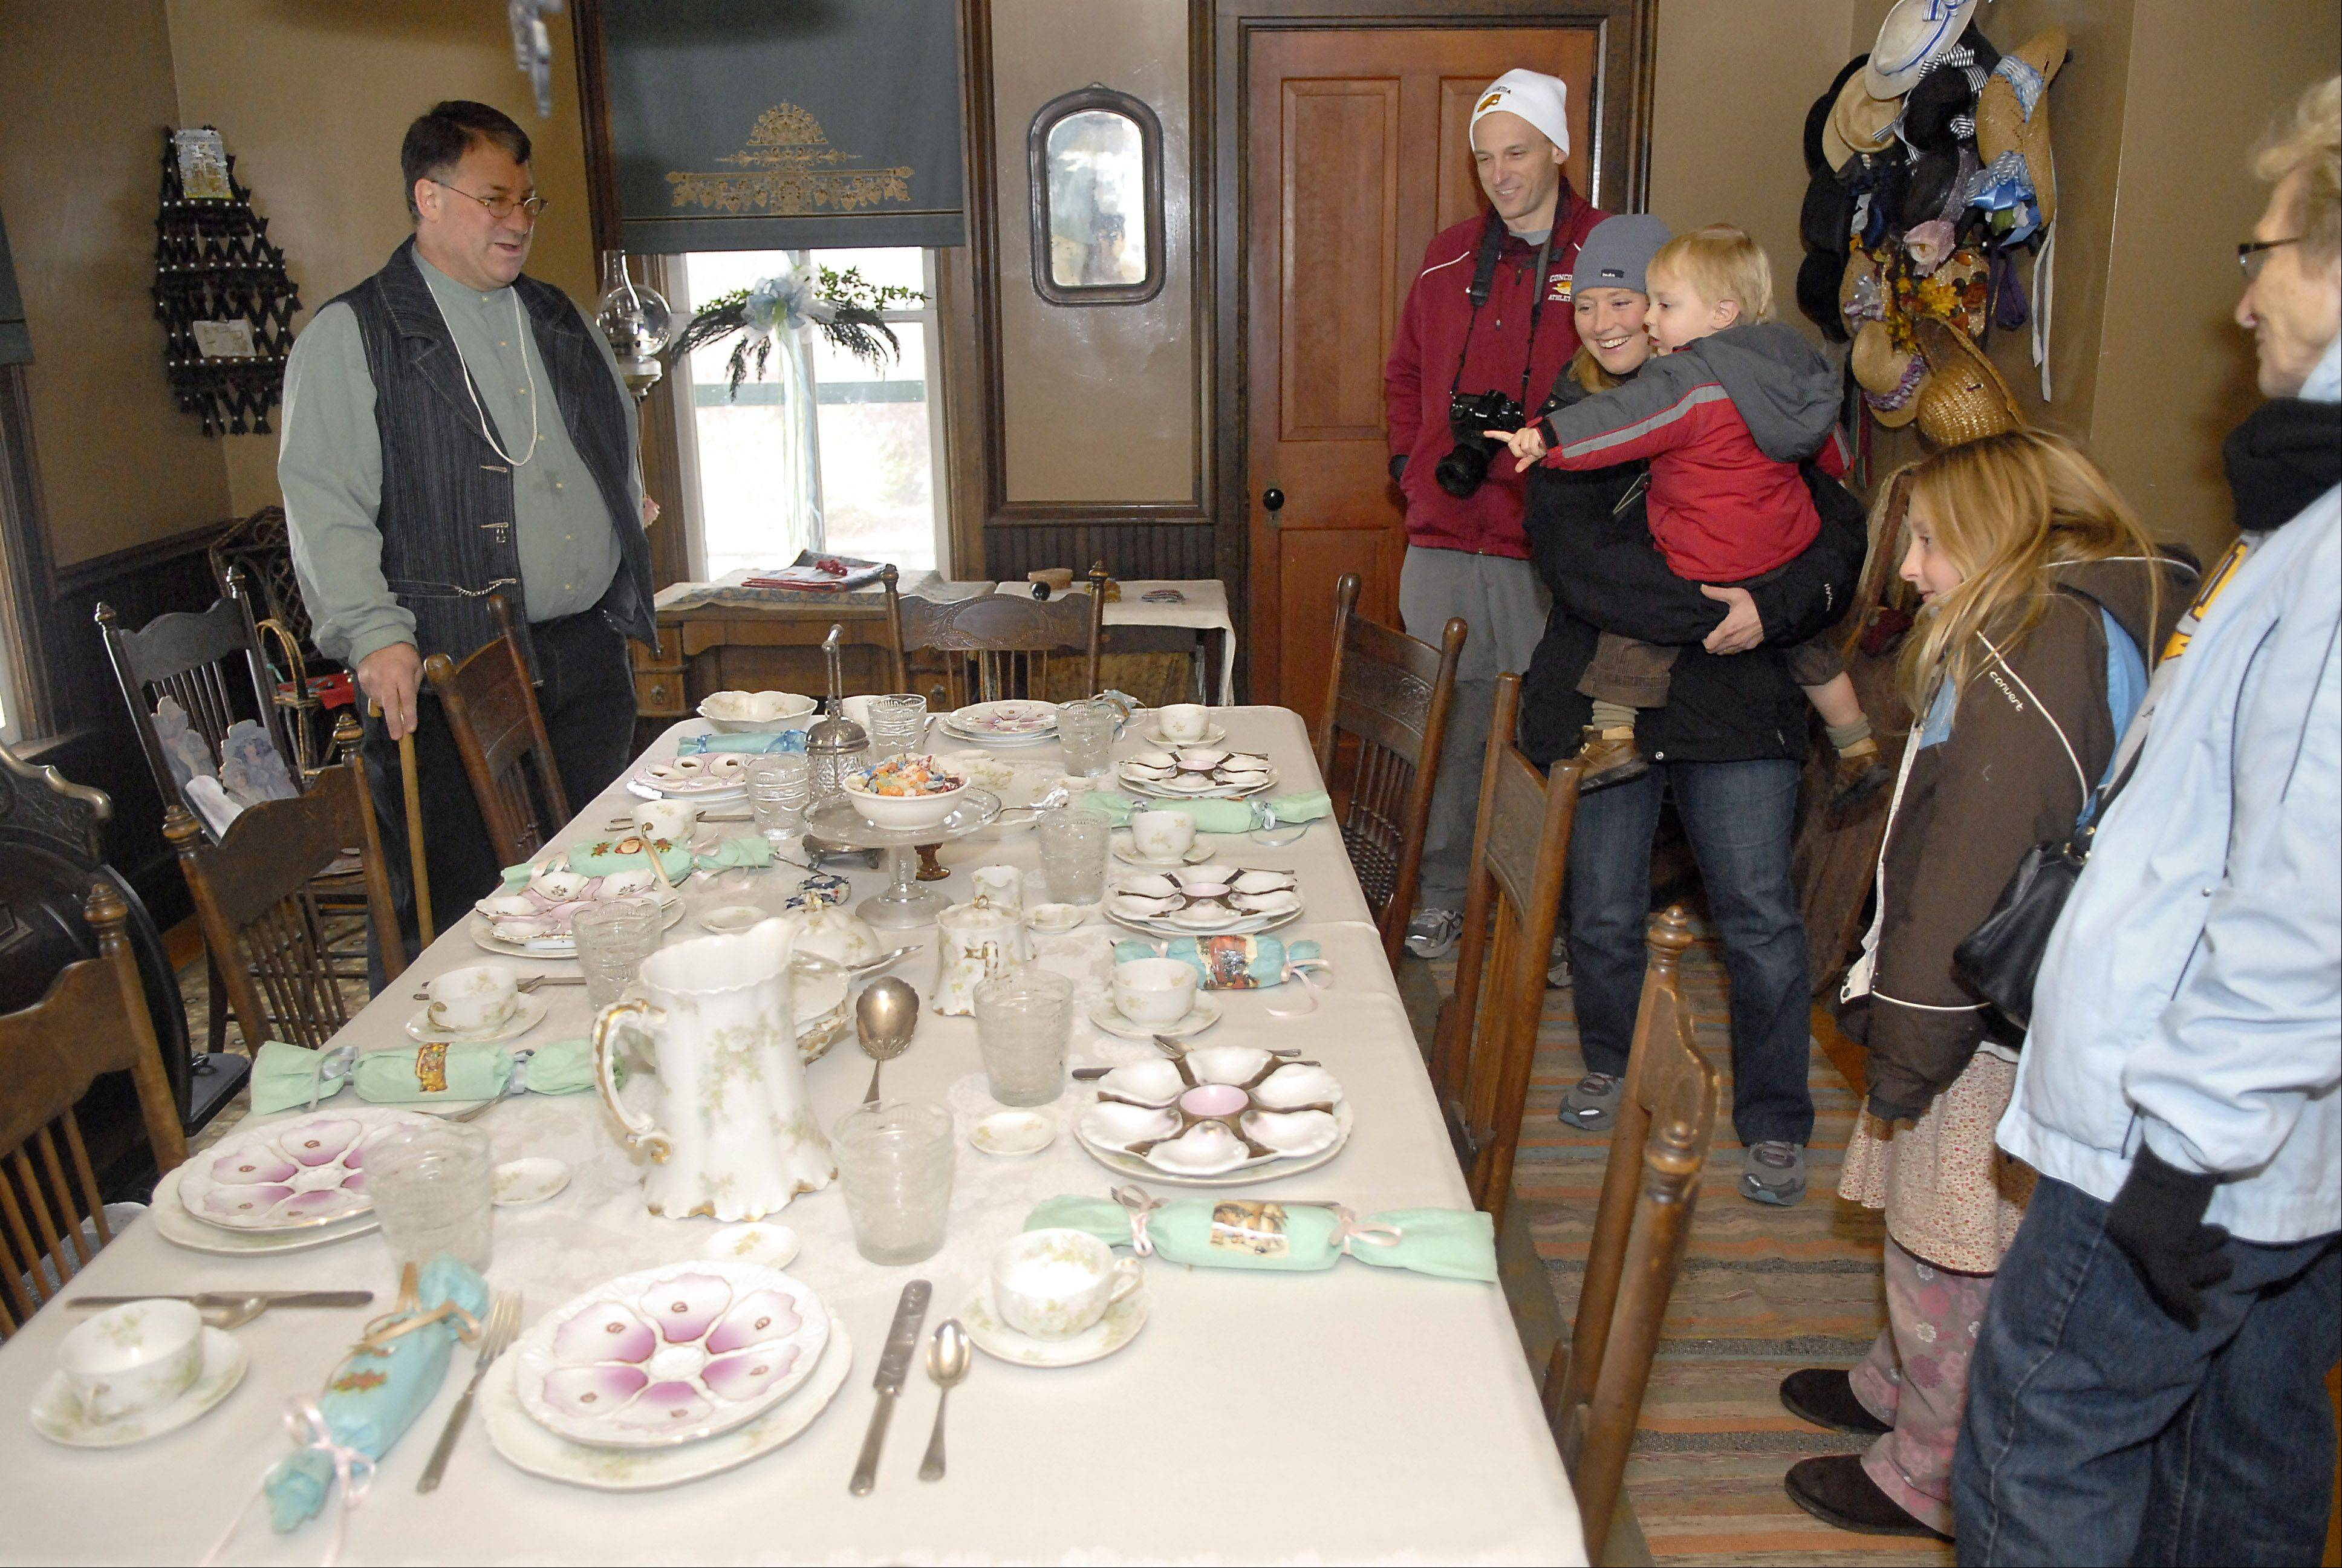 Heritage Interpreter Wayne Hill talks to the Beisel family of Elmhurst on Sunday about how tables were set for Christmas during the 1890s. The Beisels were visiting Kline Creek Farm in West Chicago, which is offering tours of its farmhouse to give visitors a sense of how the holidays were celebrated in the late 19th century. Matt and Jill Beisel, holding Jonah, 2, bring their family to the farm four or five times a year. Keegan, 8, and her grandmother, Floris Beisel, are on the right.